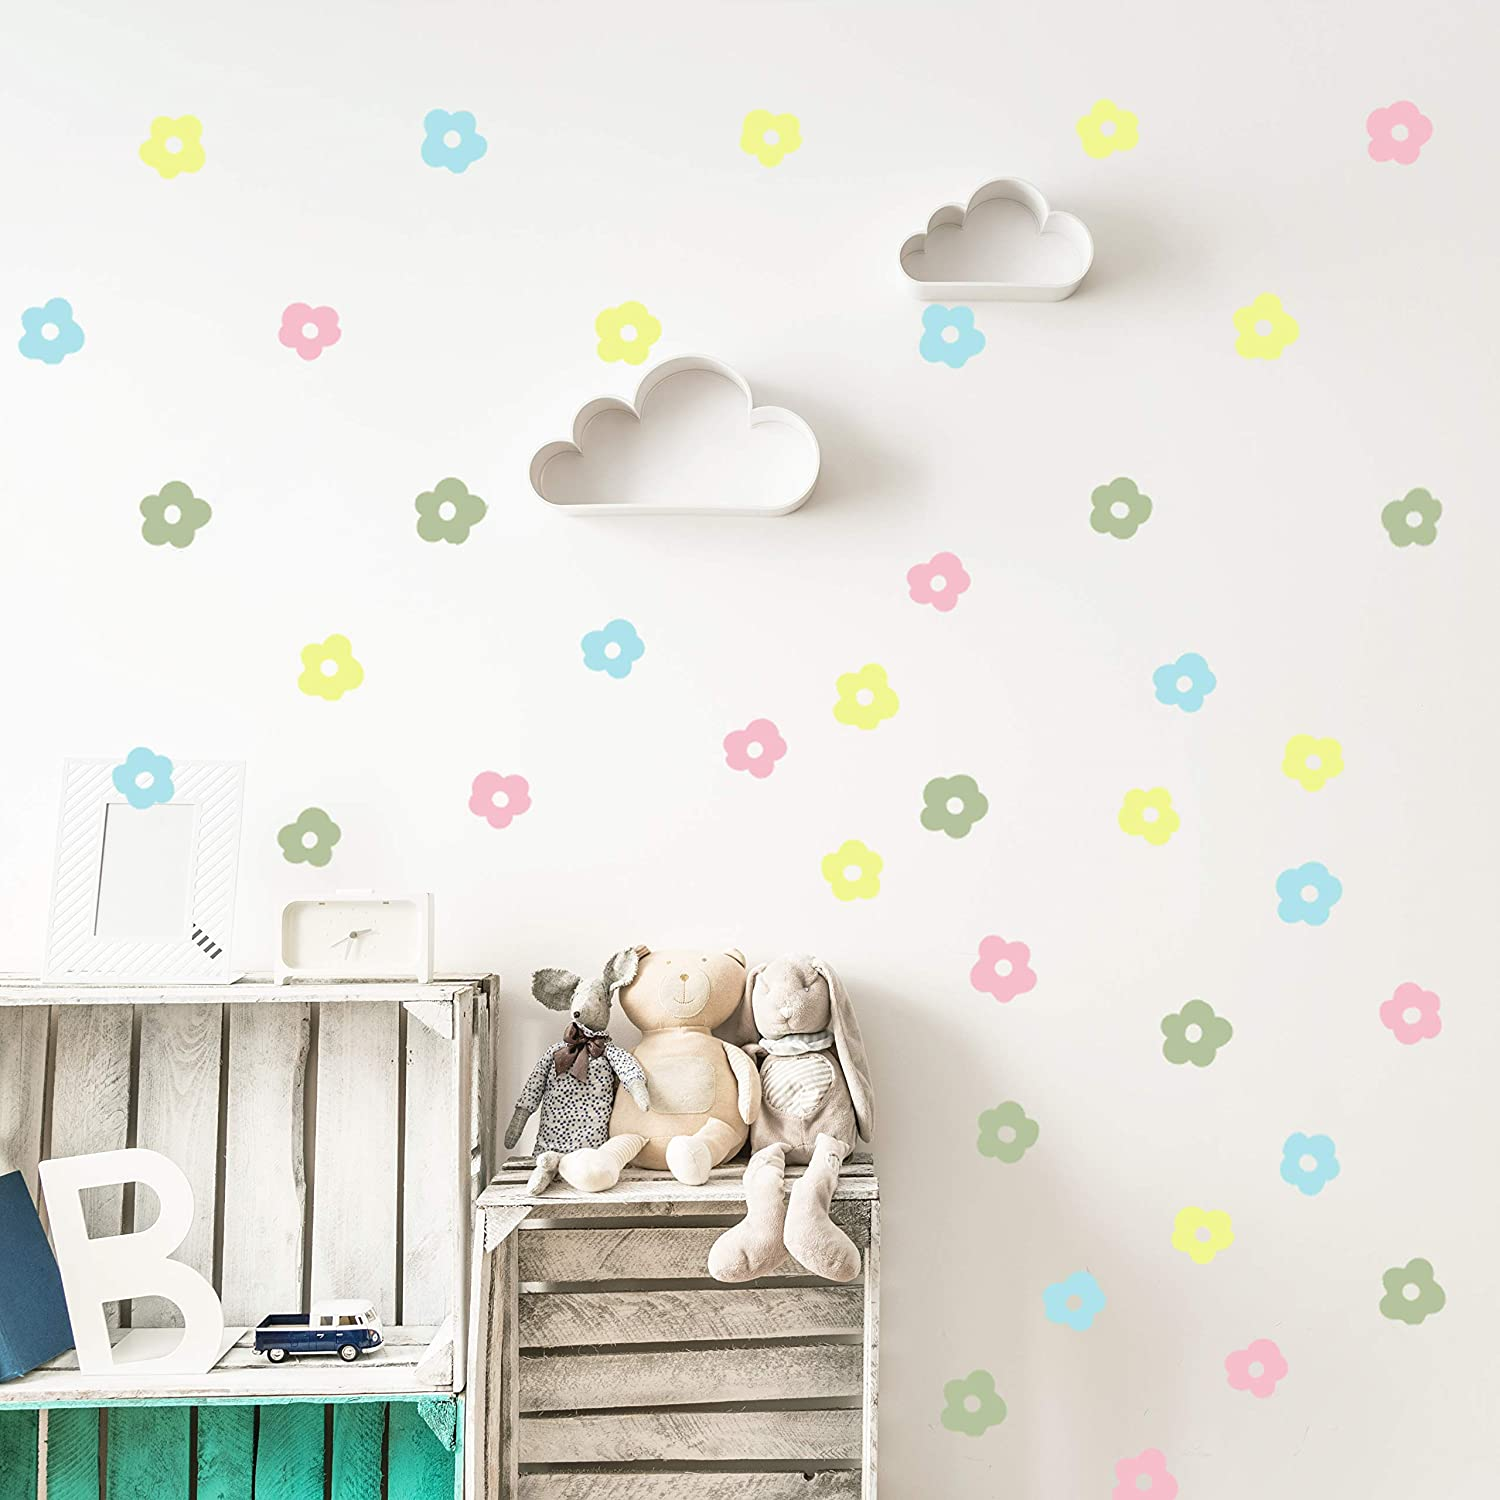 Vieli_arte Multicolor Flowers Wall Vinyl Decal décor Nursery. Adhesive Original Artist Design Love Flower Yellow, Pink, Green, Light Blue Stickers for Kids. Baby Nordic Flores Bedroom Decoration